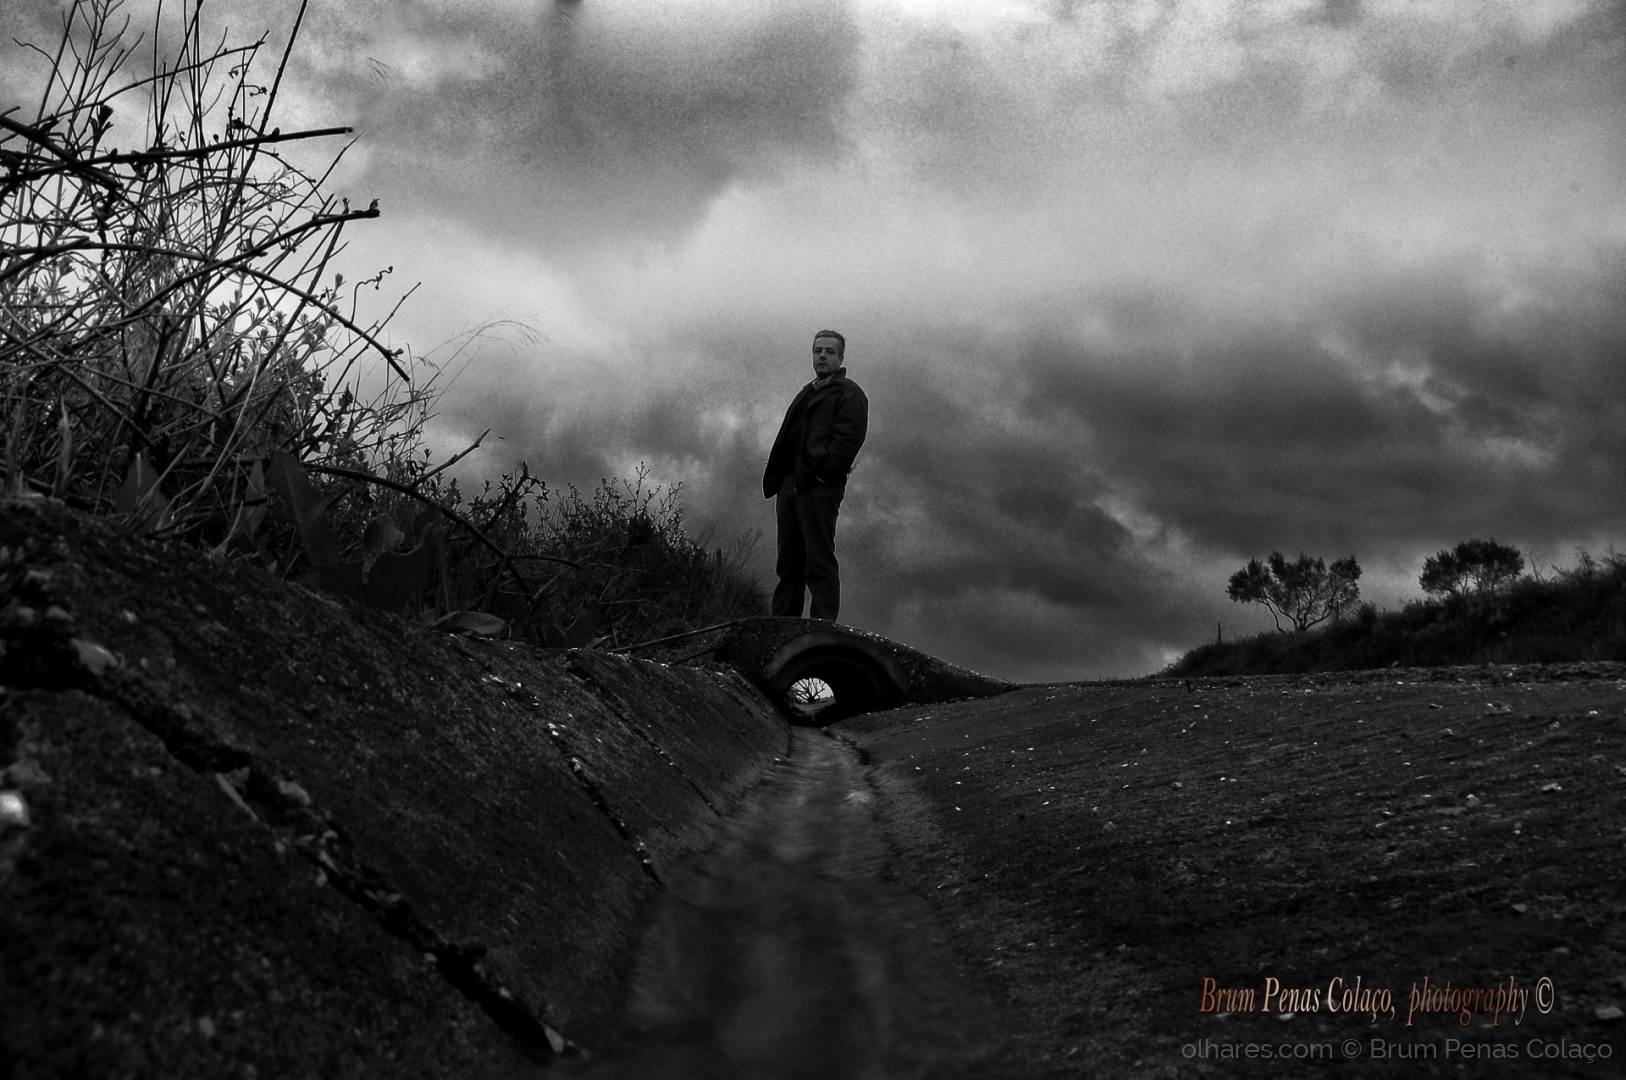 Retratos/KING OF THE HILL